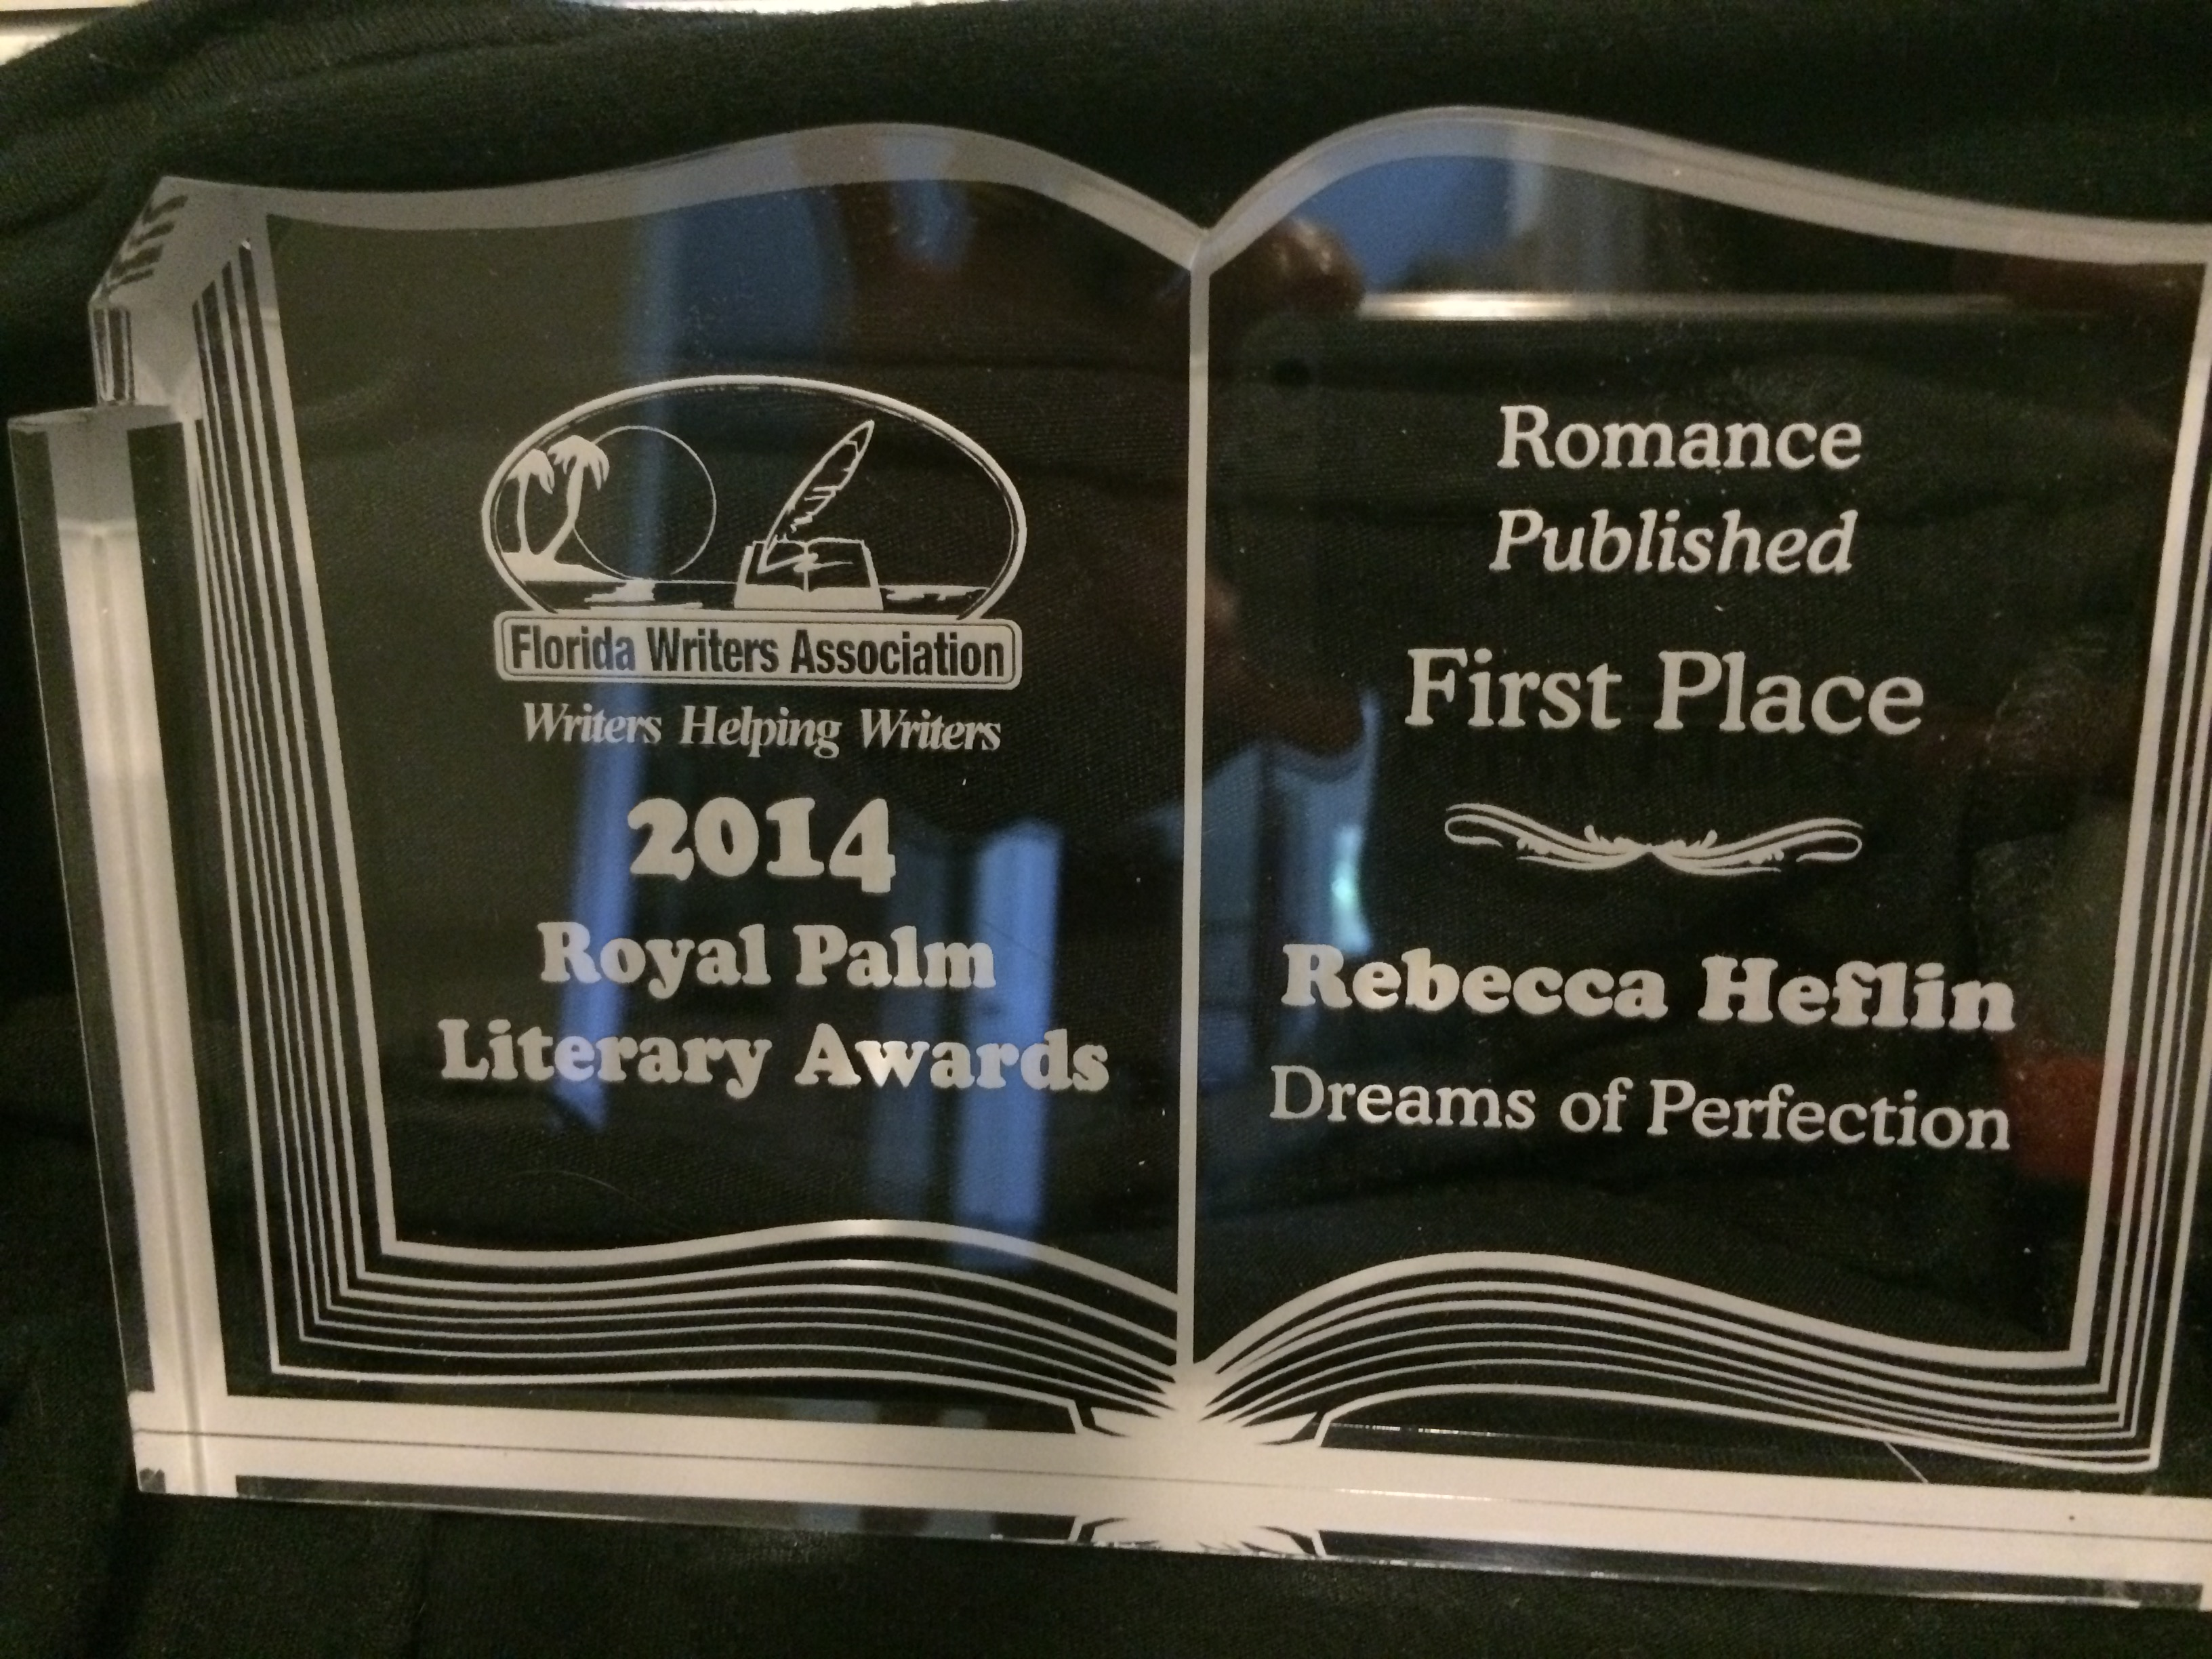 2014 Royal Palm Literary Award